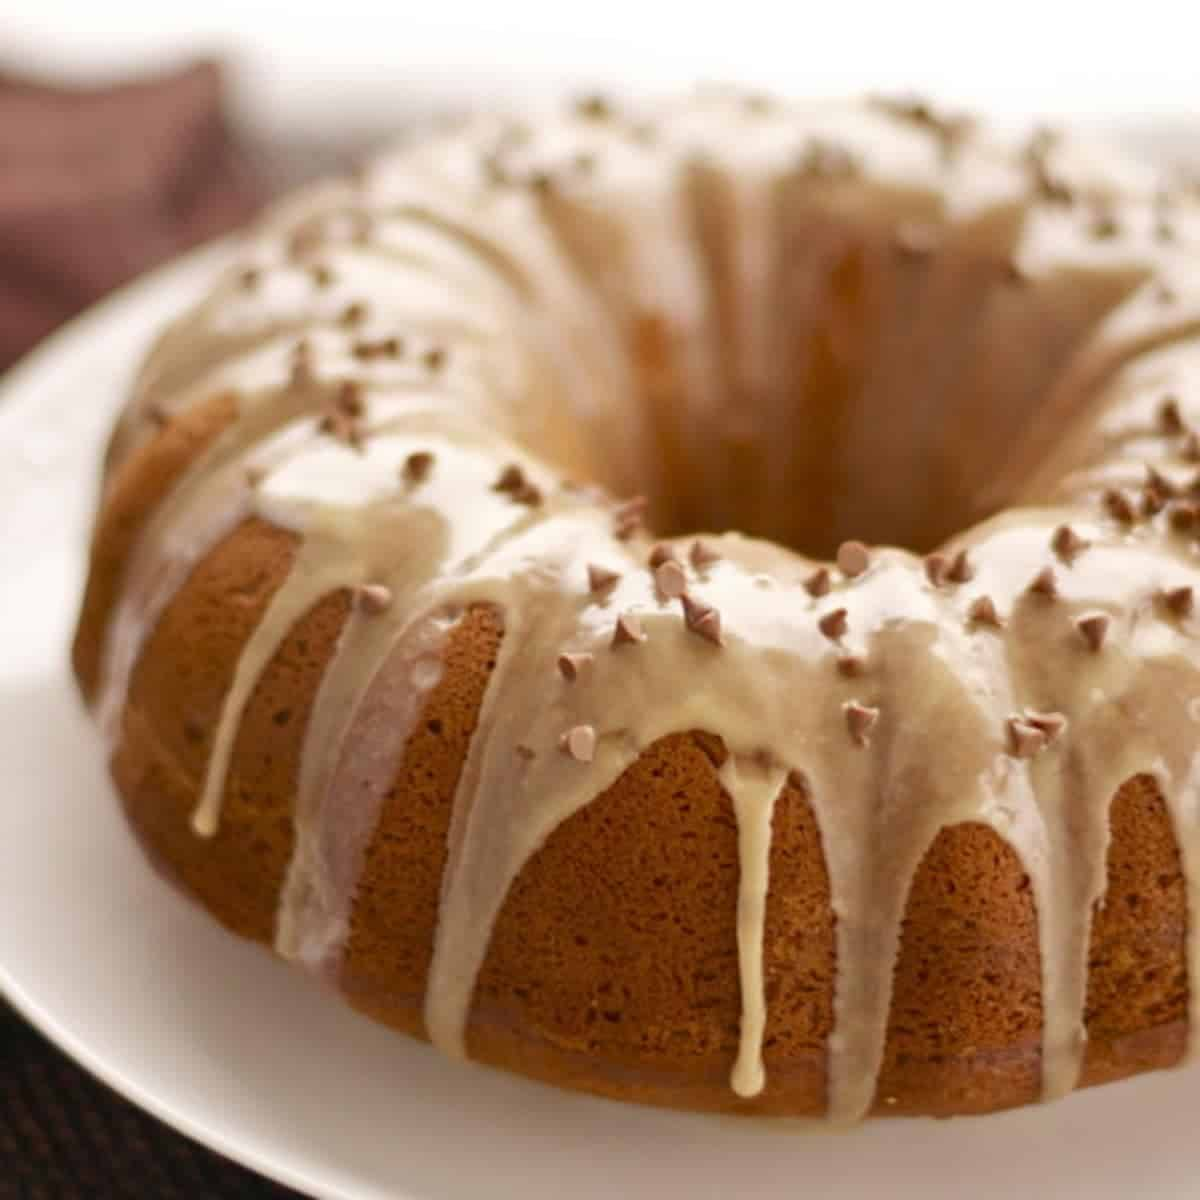 Coffee streusel bundt cake on a plate with drizzle.